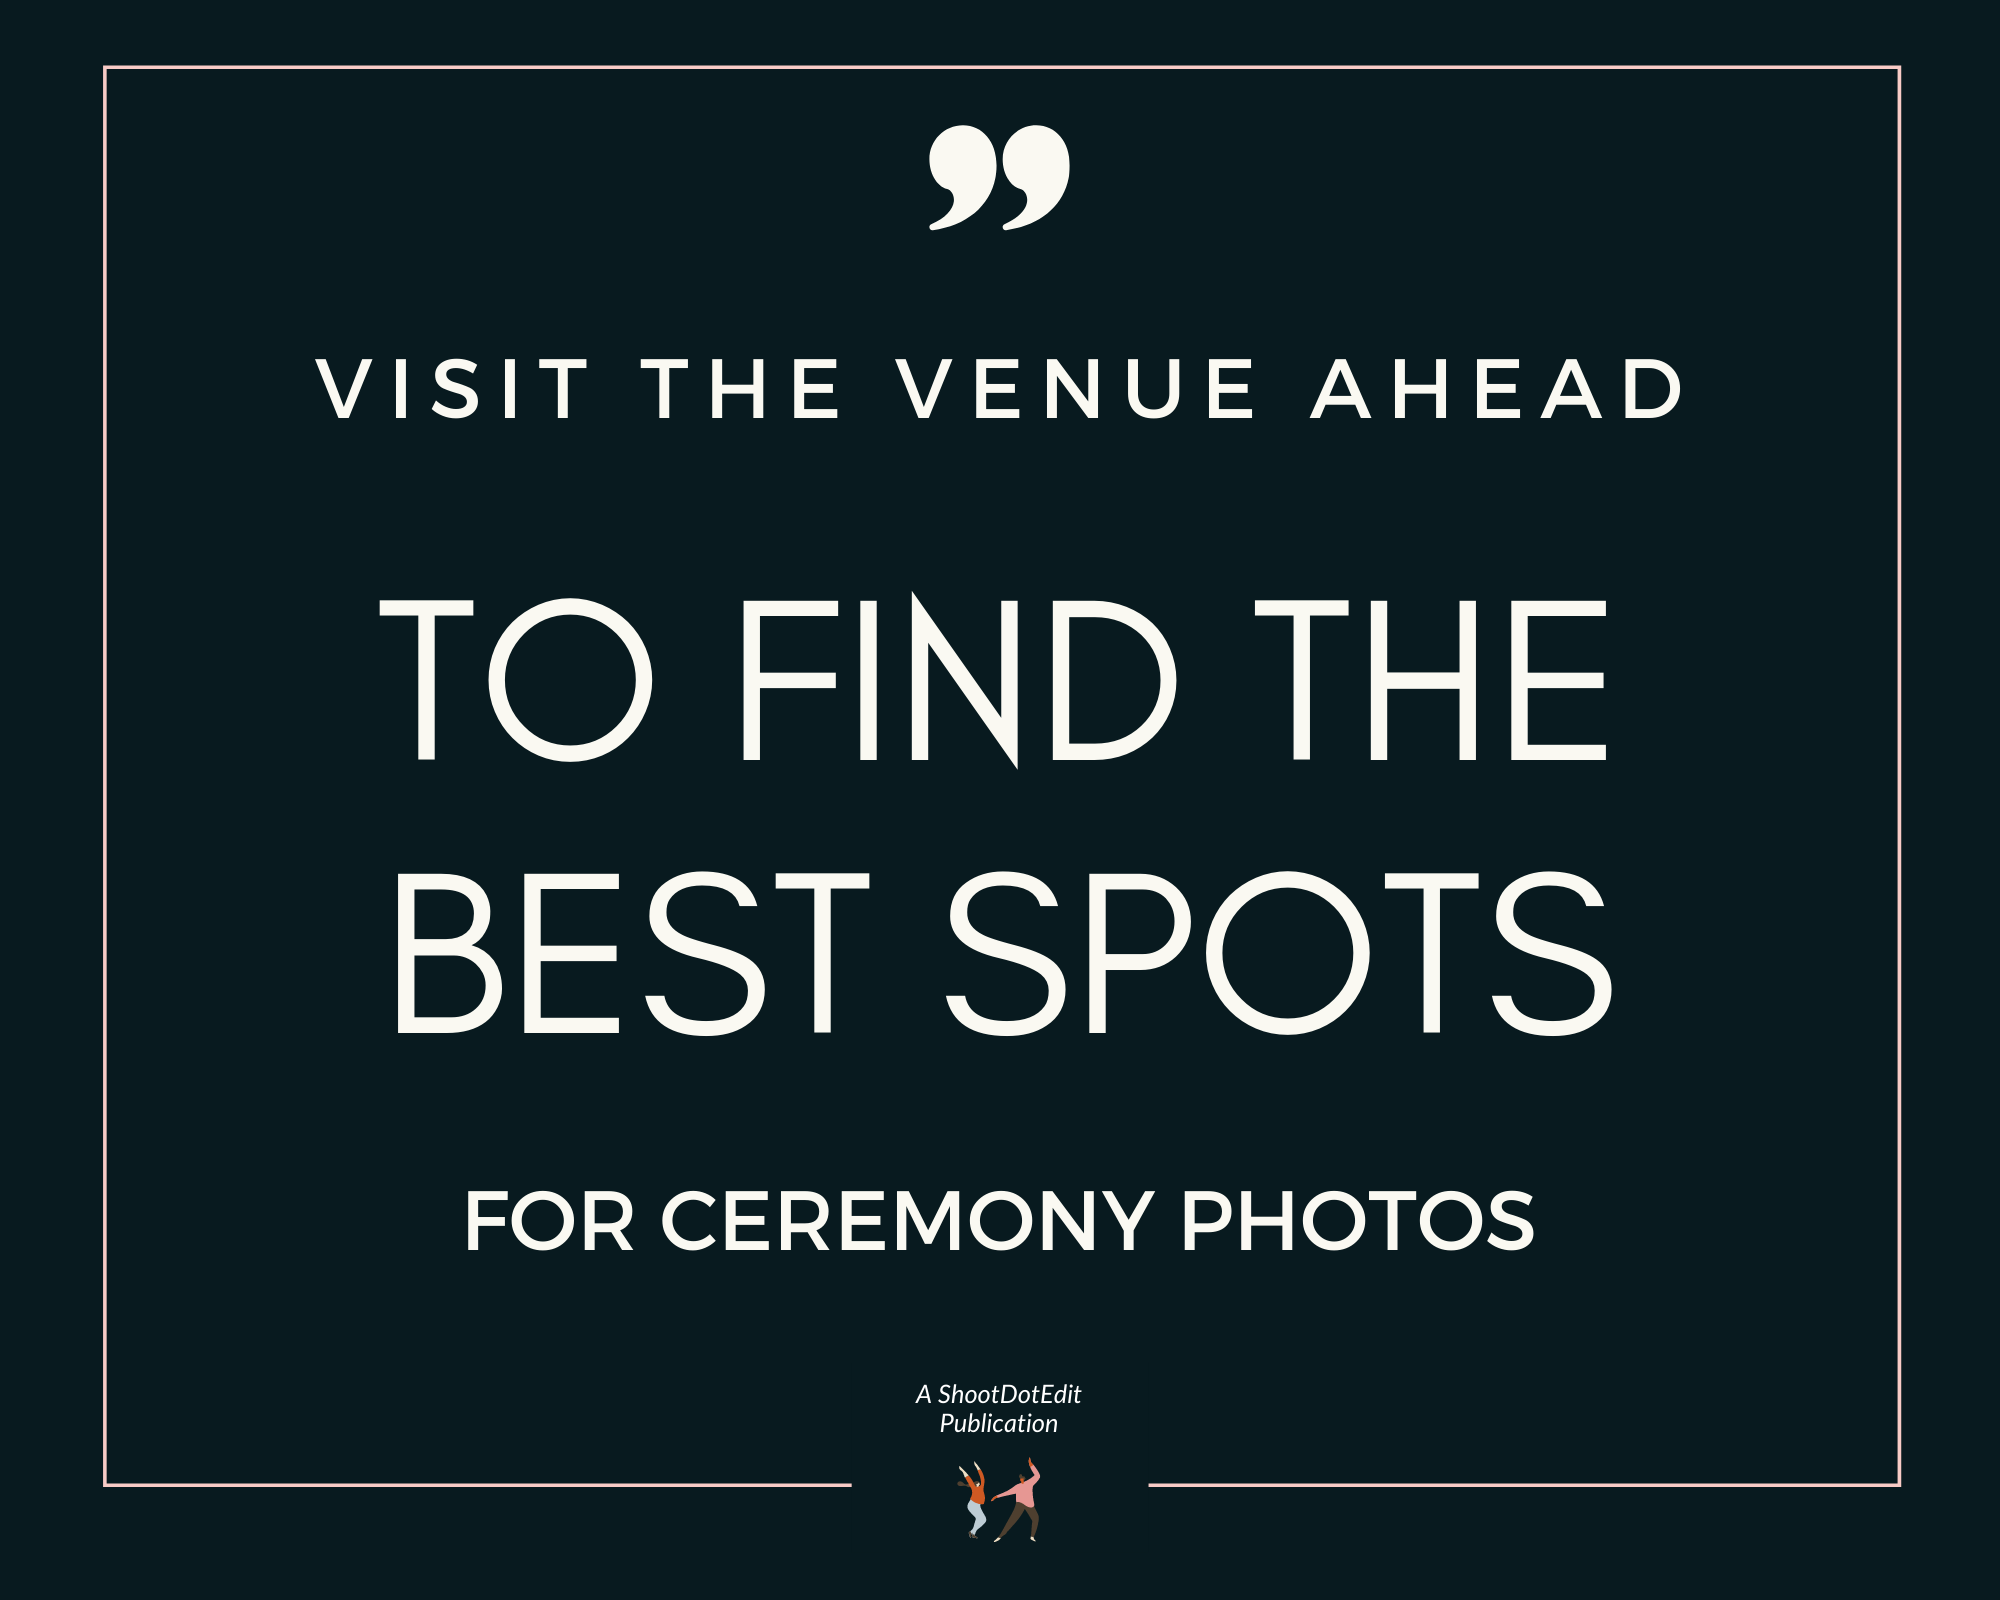 Infographics stating visit the venue ahead to find the best spots for ceremony photos